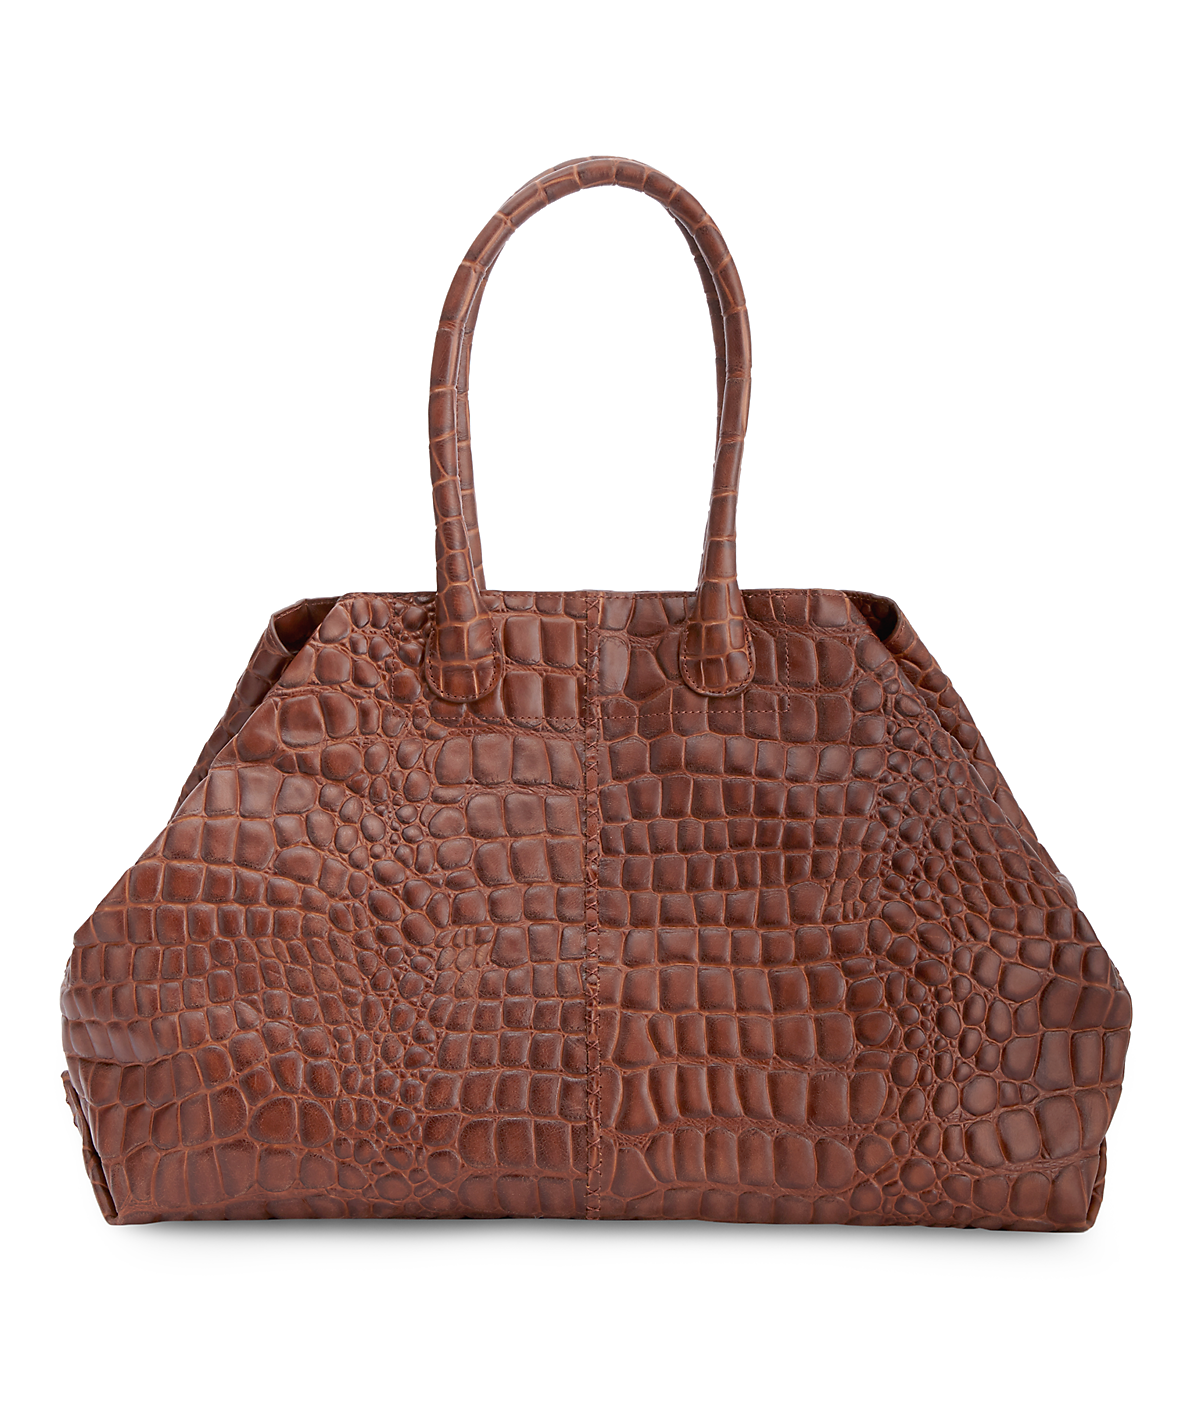 Chelsea Shopper from liebeskind